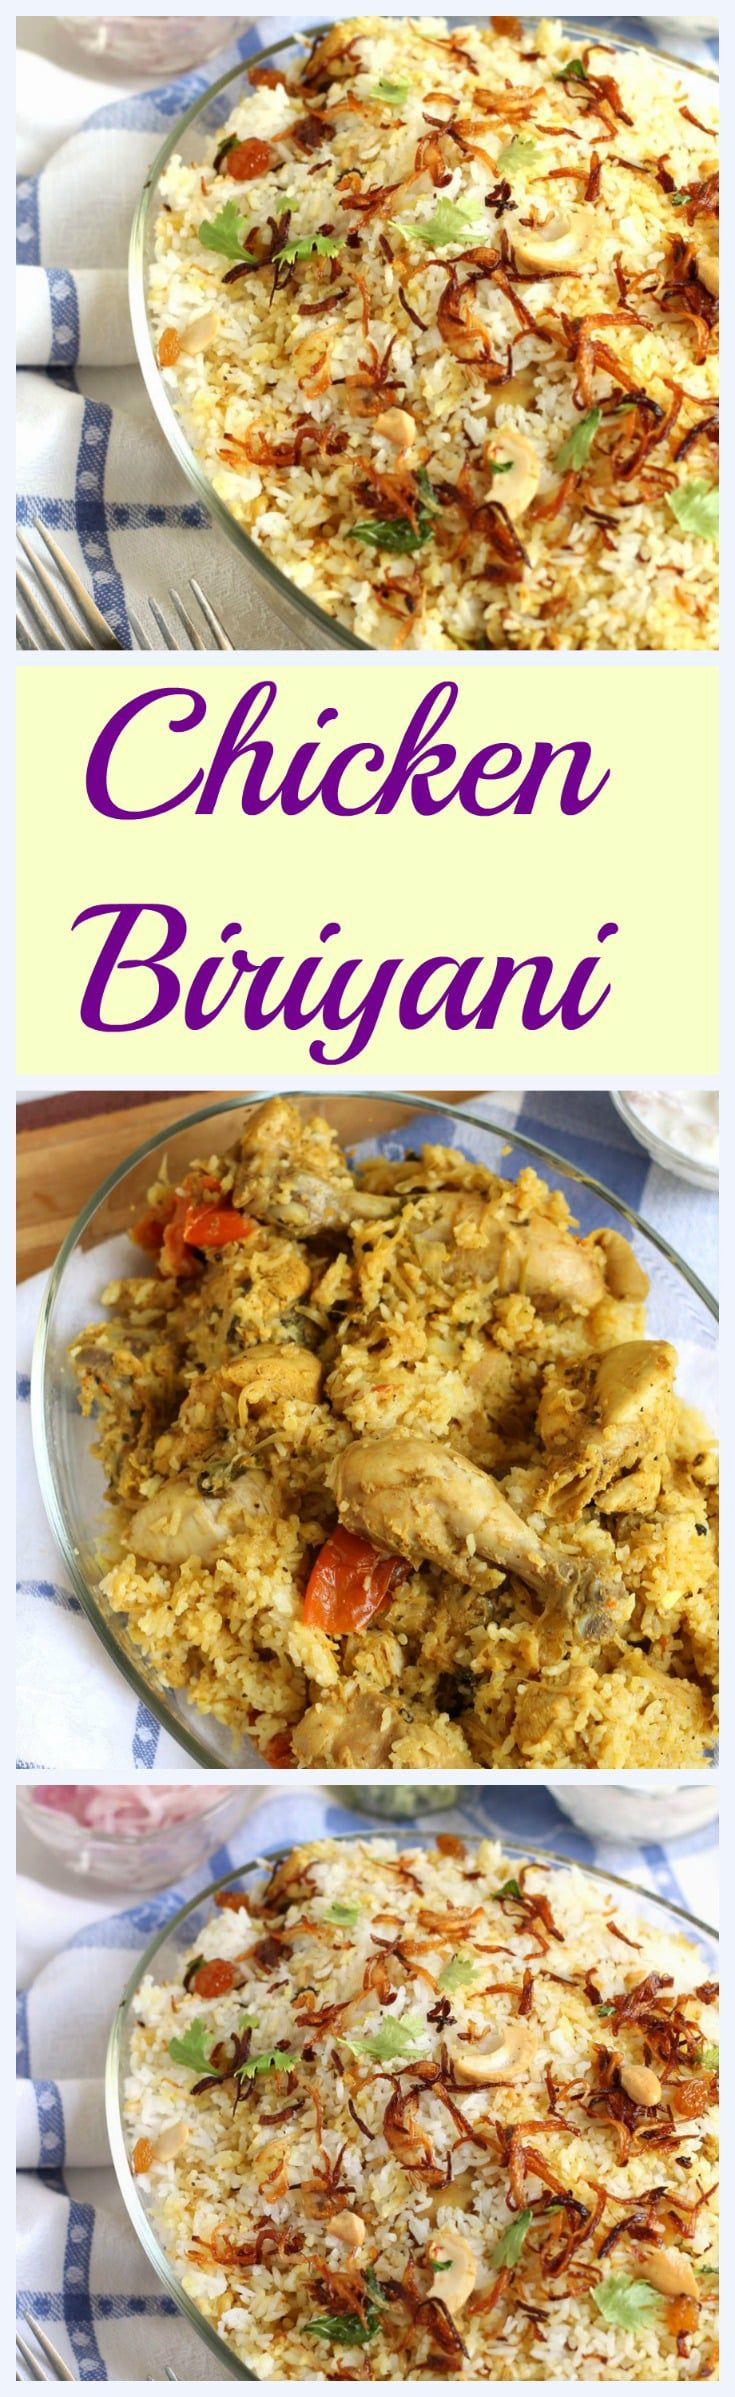 Delicious,and flavorful North Kerala style  one pot meal recipe with step by step images.Chicken marinated in spices then layered with rice and dum cooked.